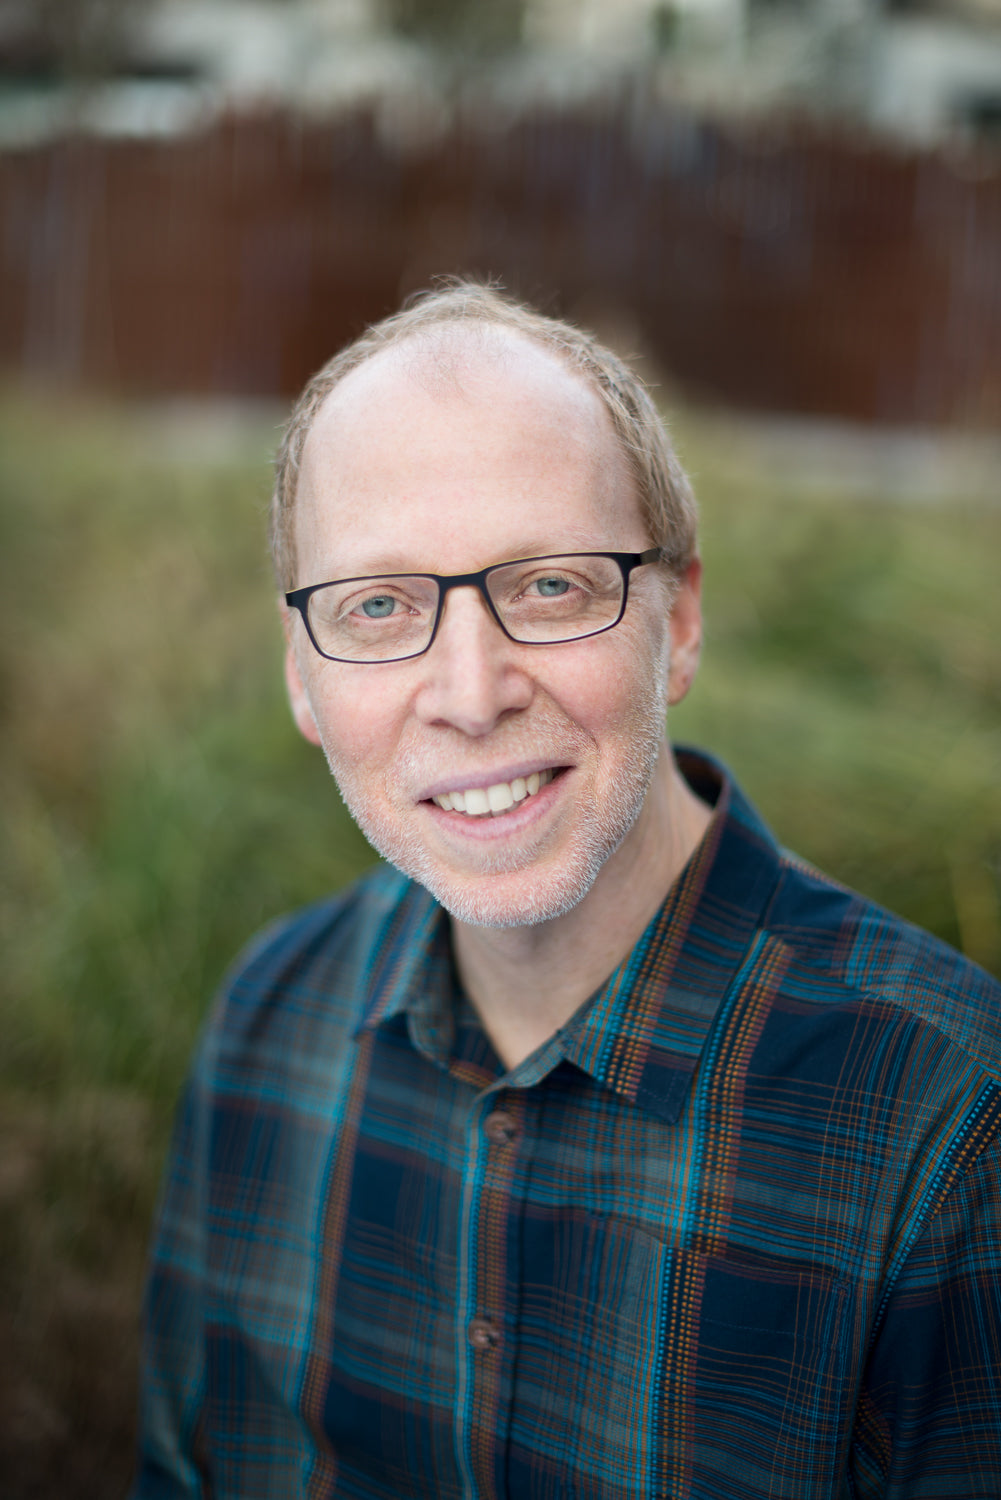 October 07, 2018 - Sunday 12:15pm-5:45pm - Healing Sessions with Dave Markowitz - with Dave Markowitz